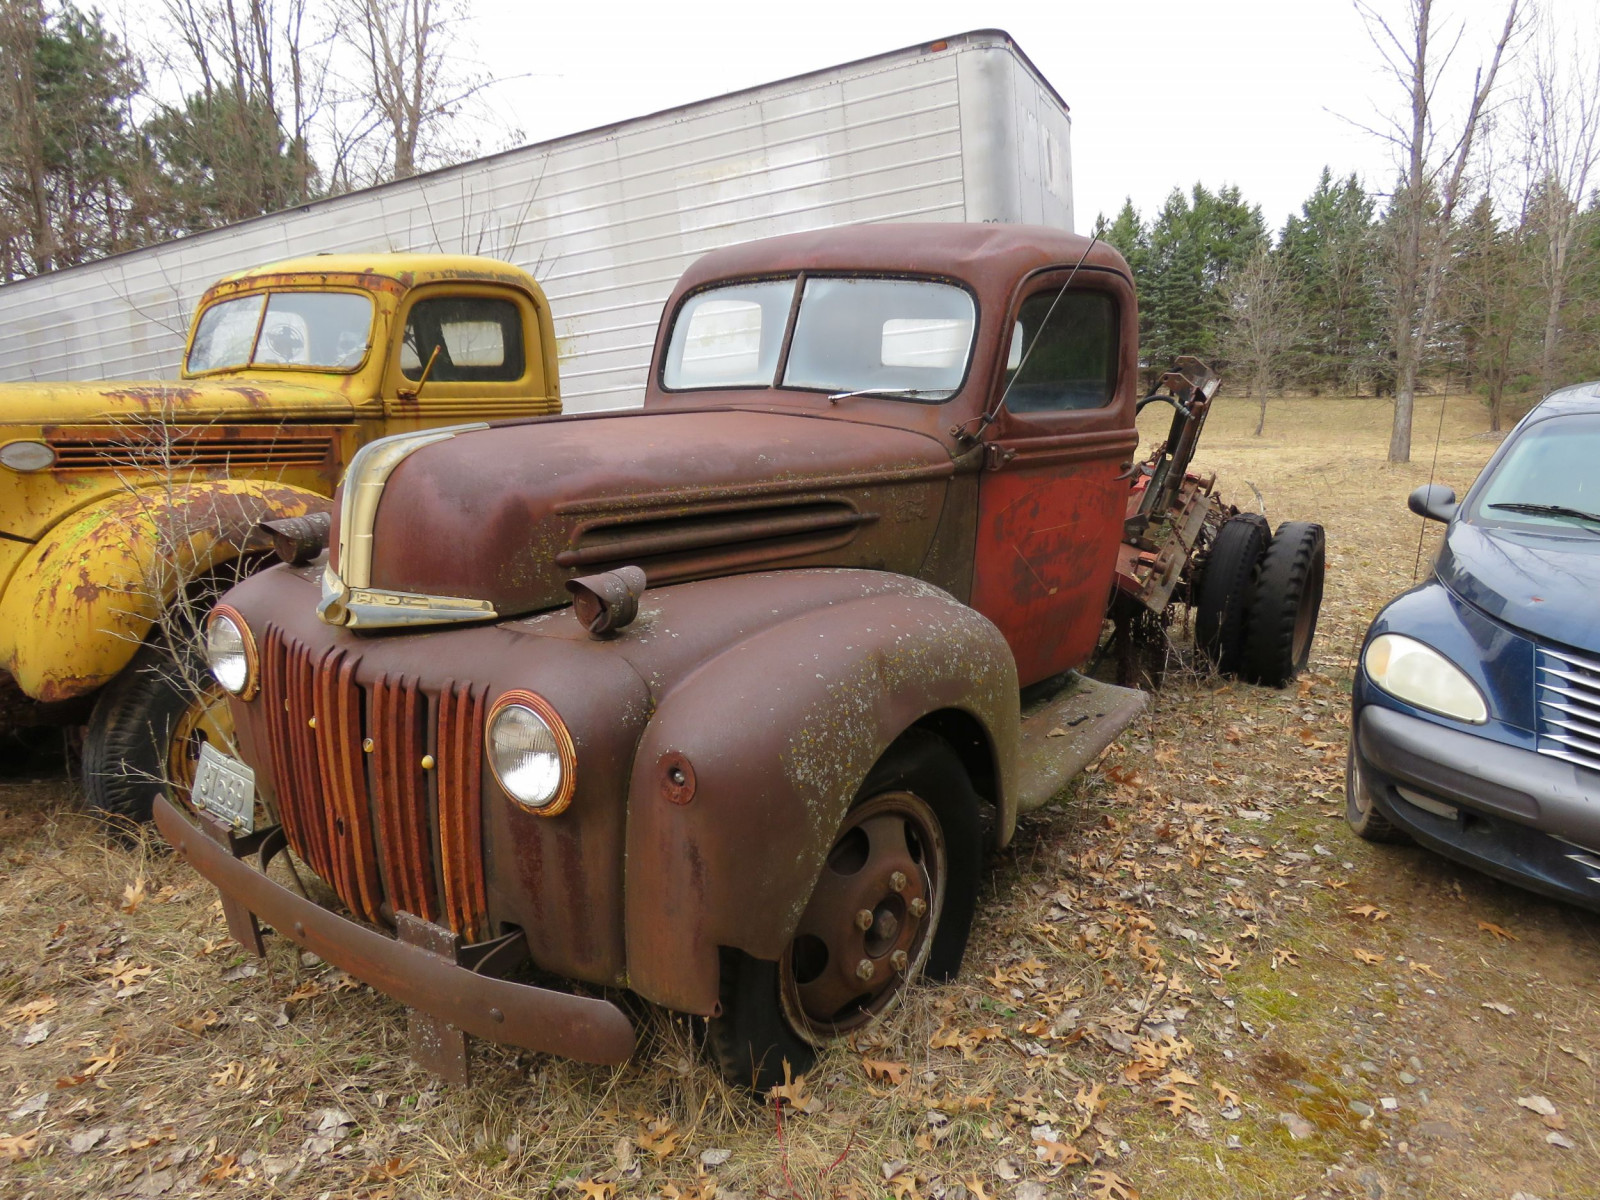 1940's Ford Truck for Rod or Restore - Image 3